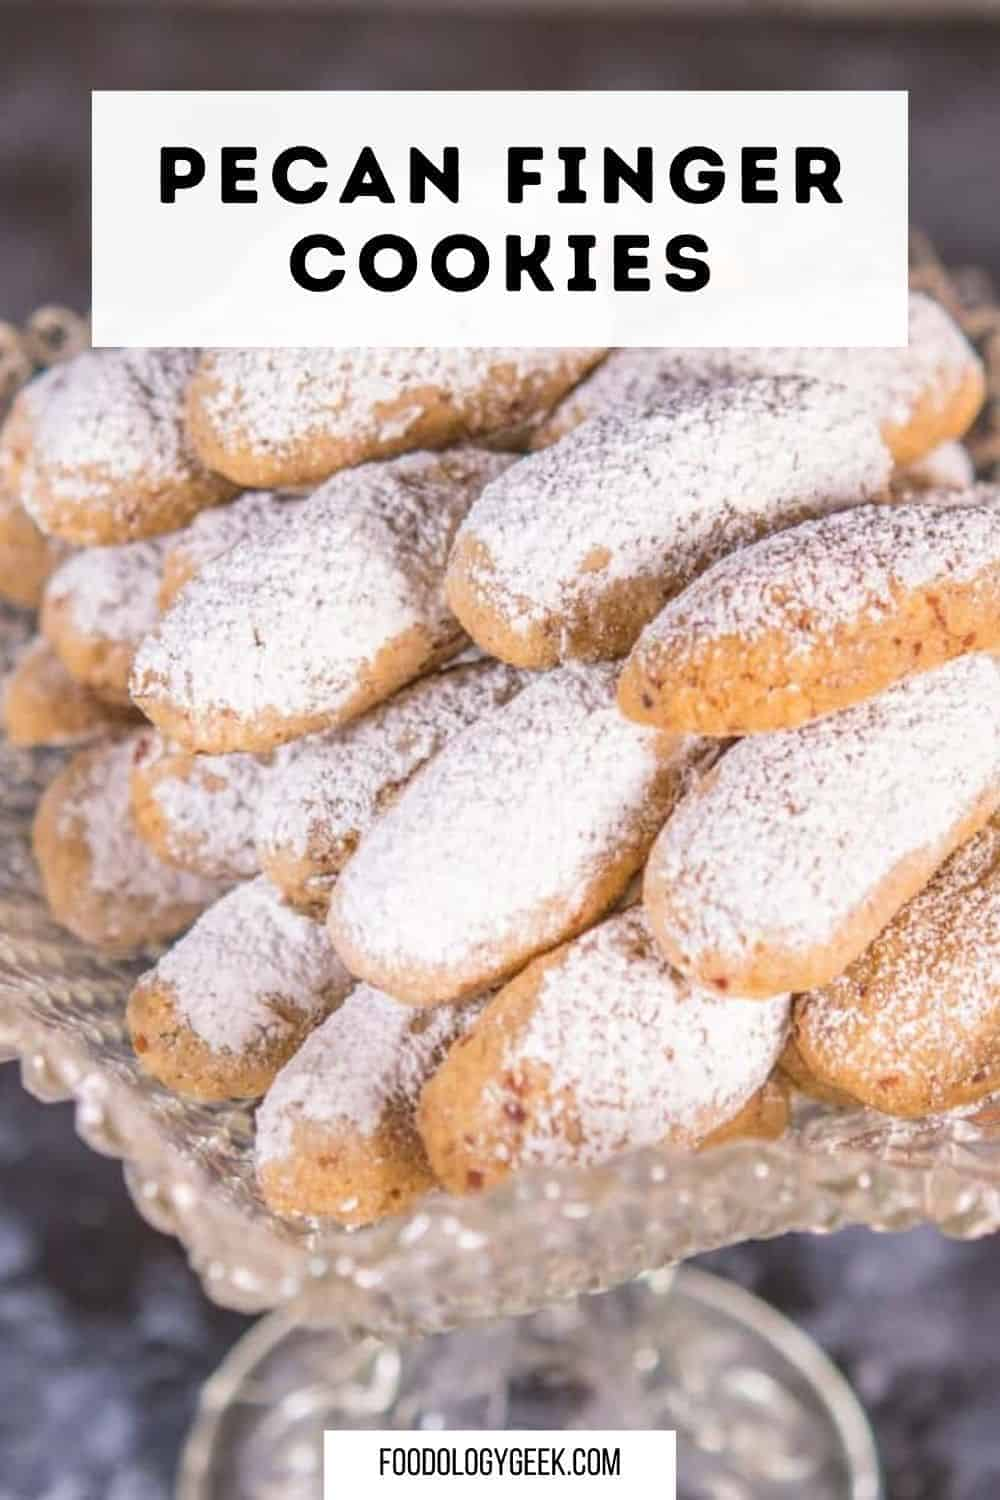 These cookies are similar to shortbread cookies. Once out of the oven, and slightly cooled, toss these cookies in powdered sugar. The cookies themselves are more nutty than sweet.